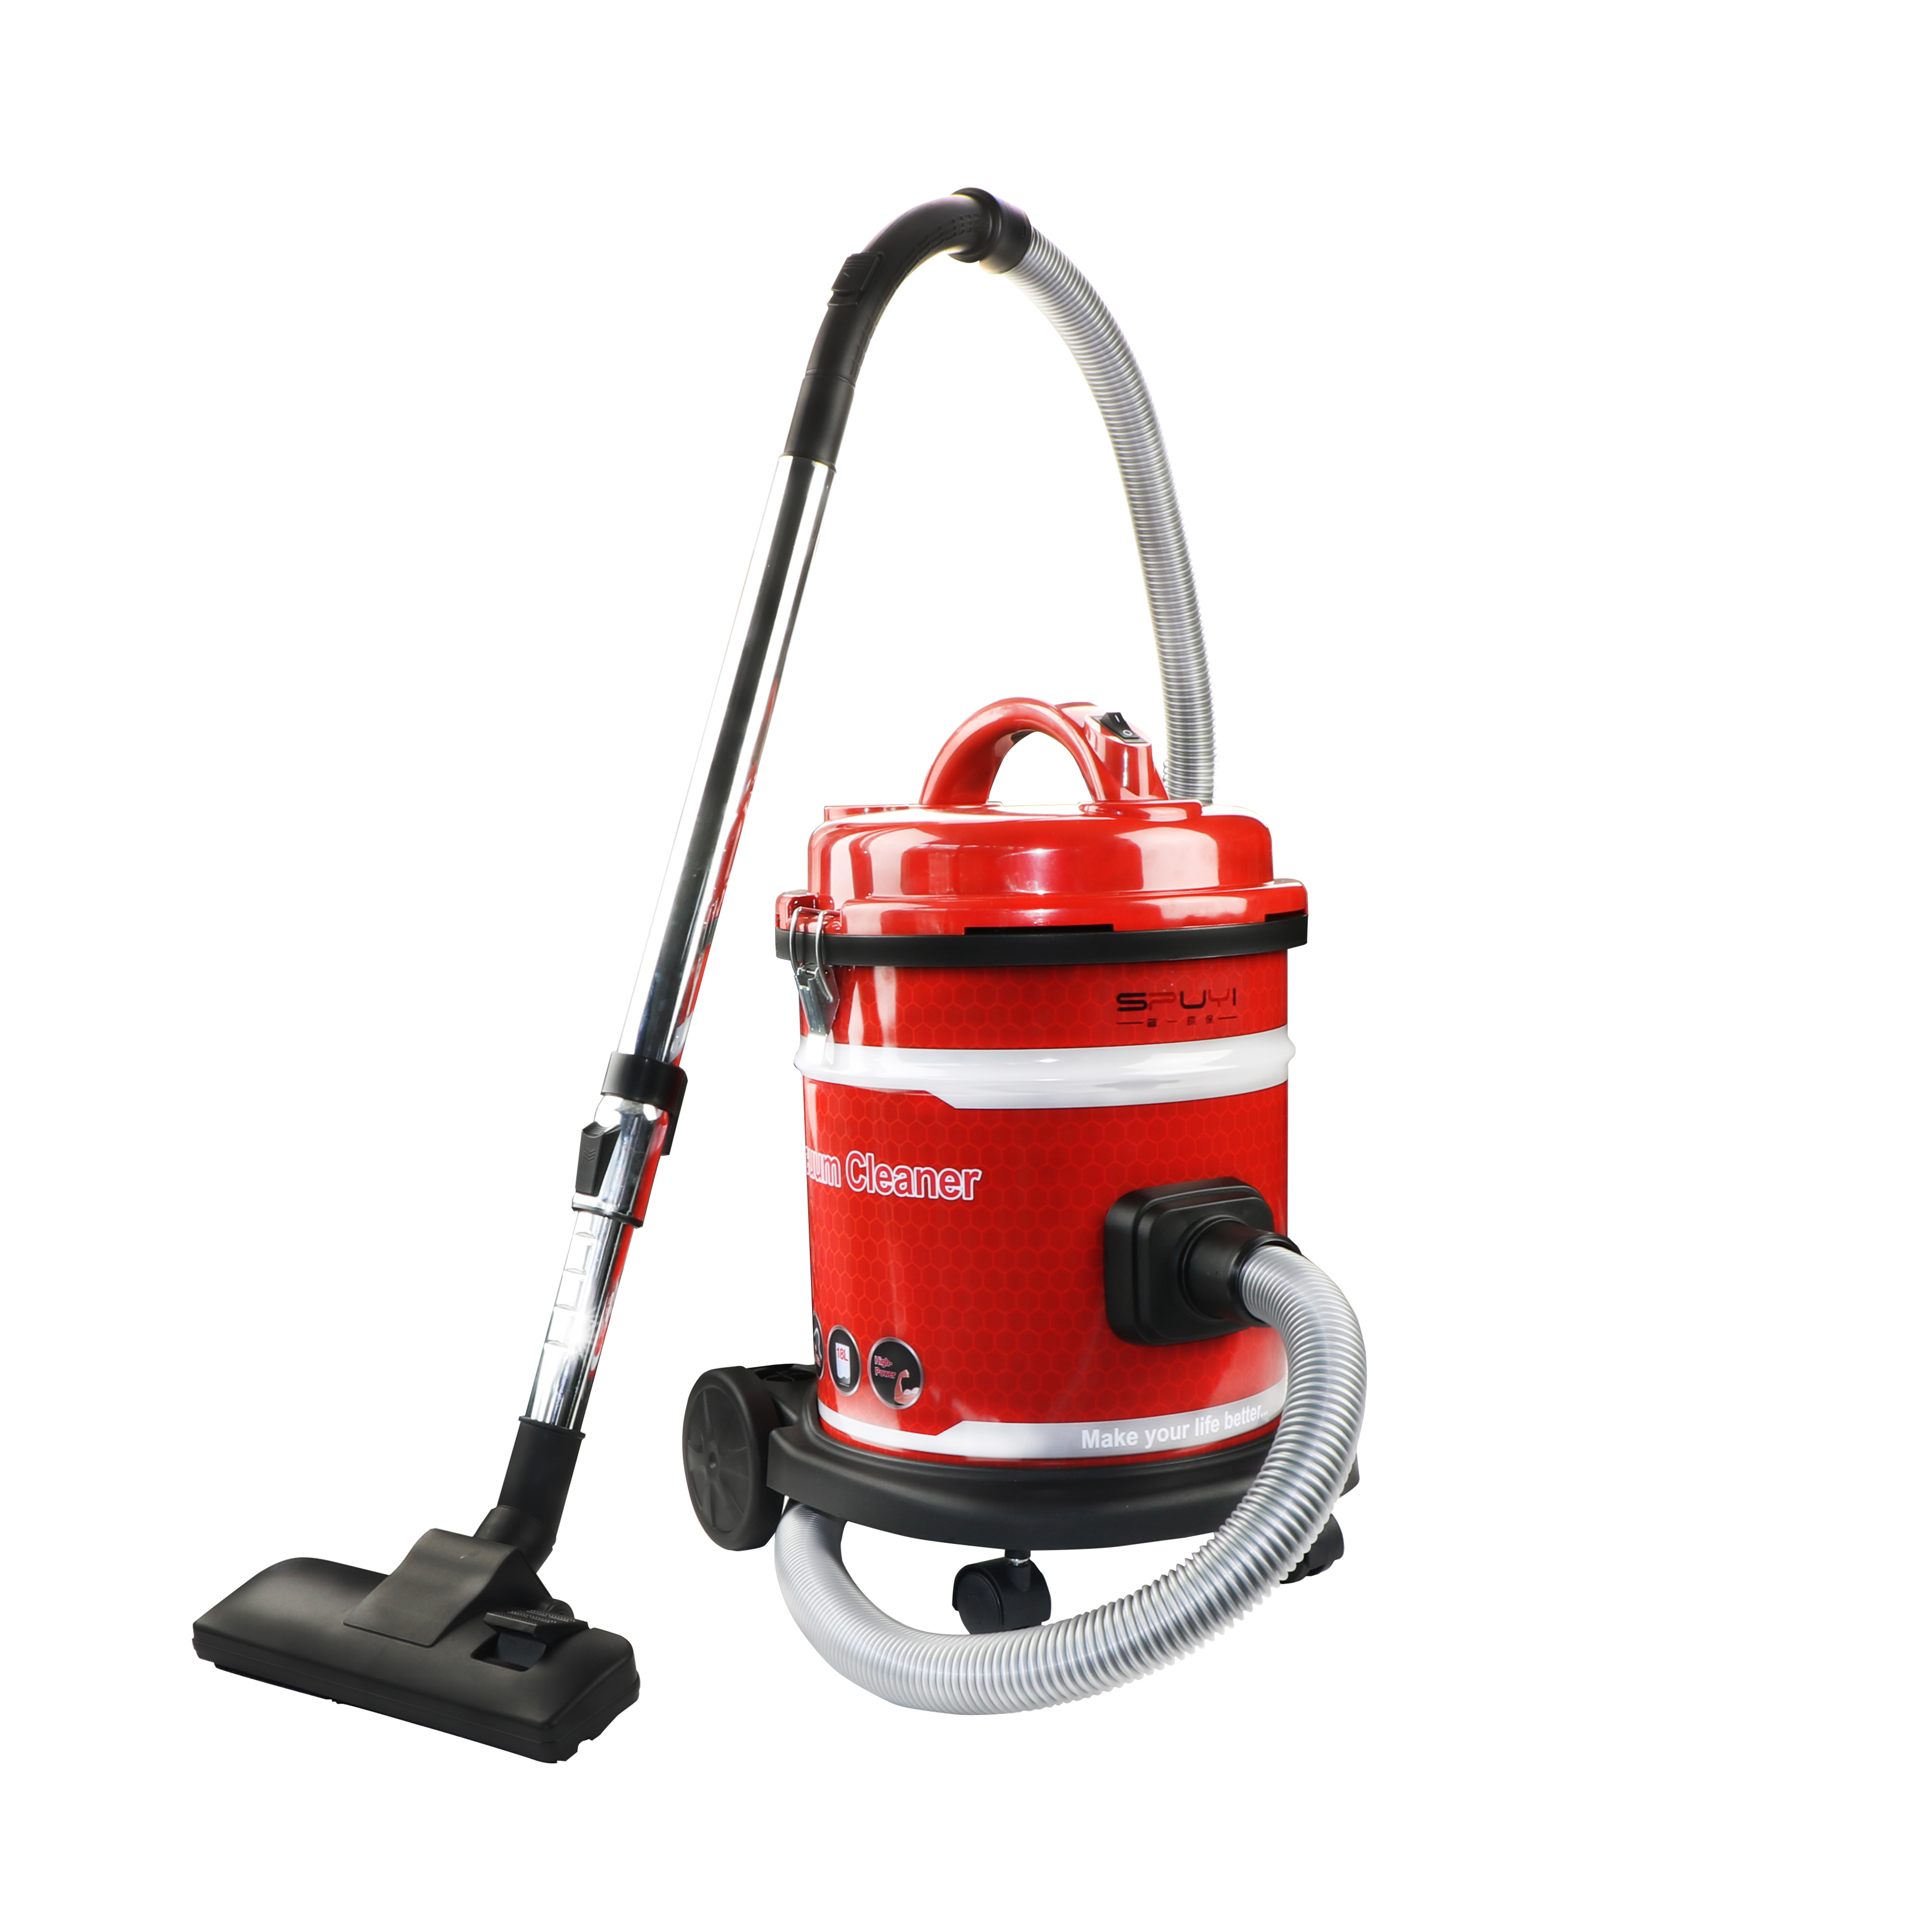 SYH183 series commercial vacuum cleaner